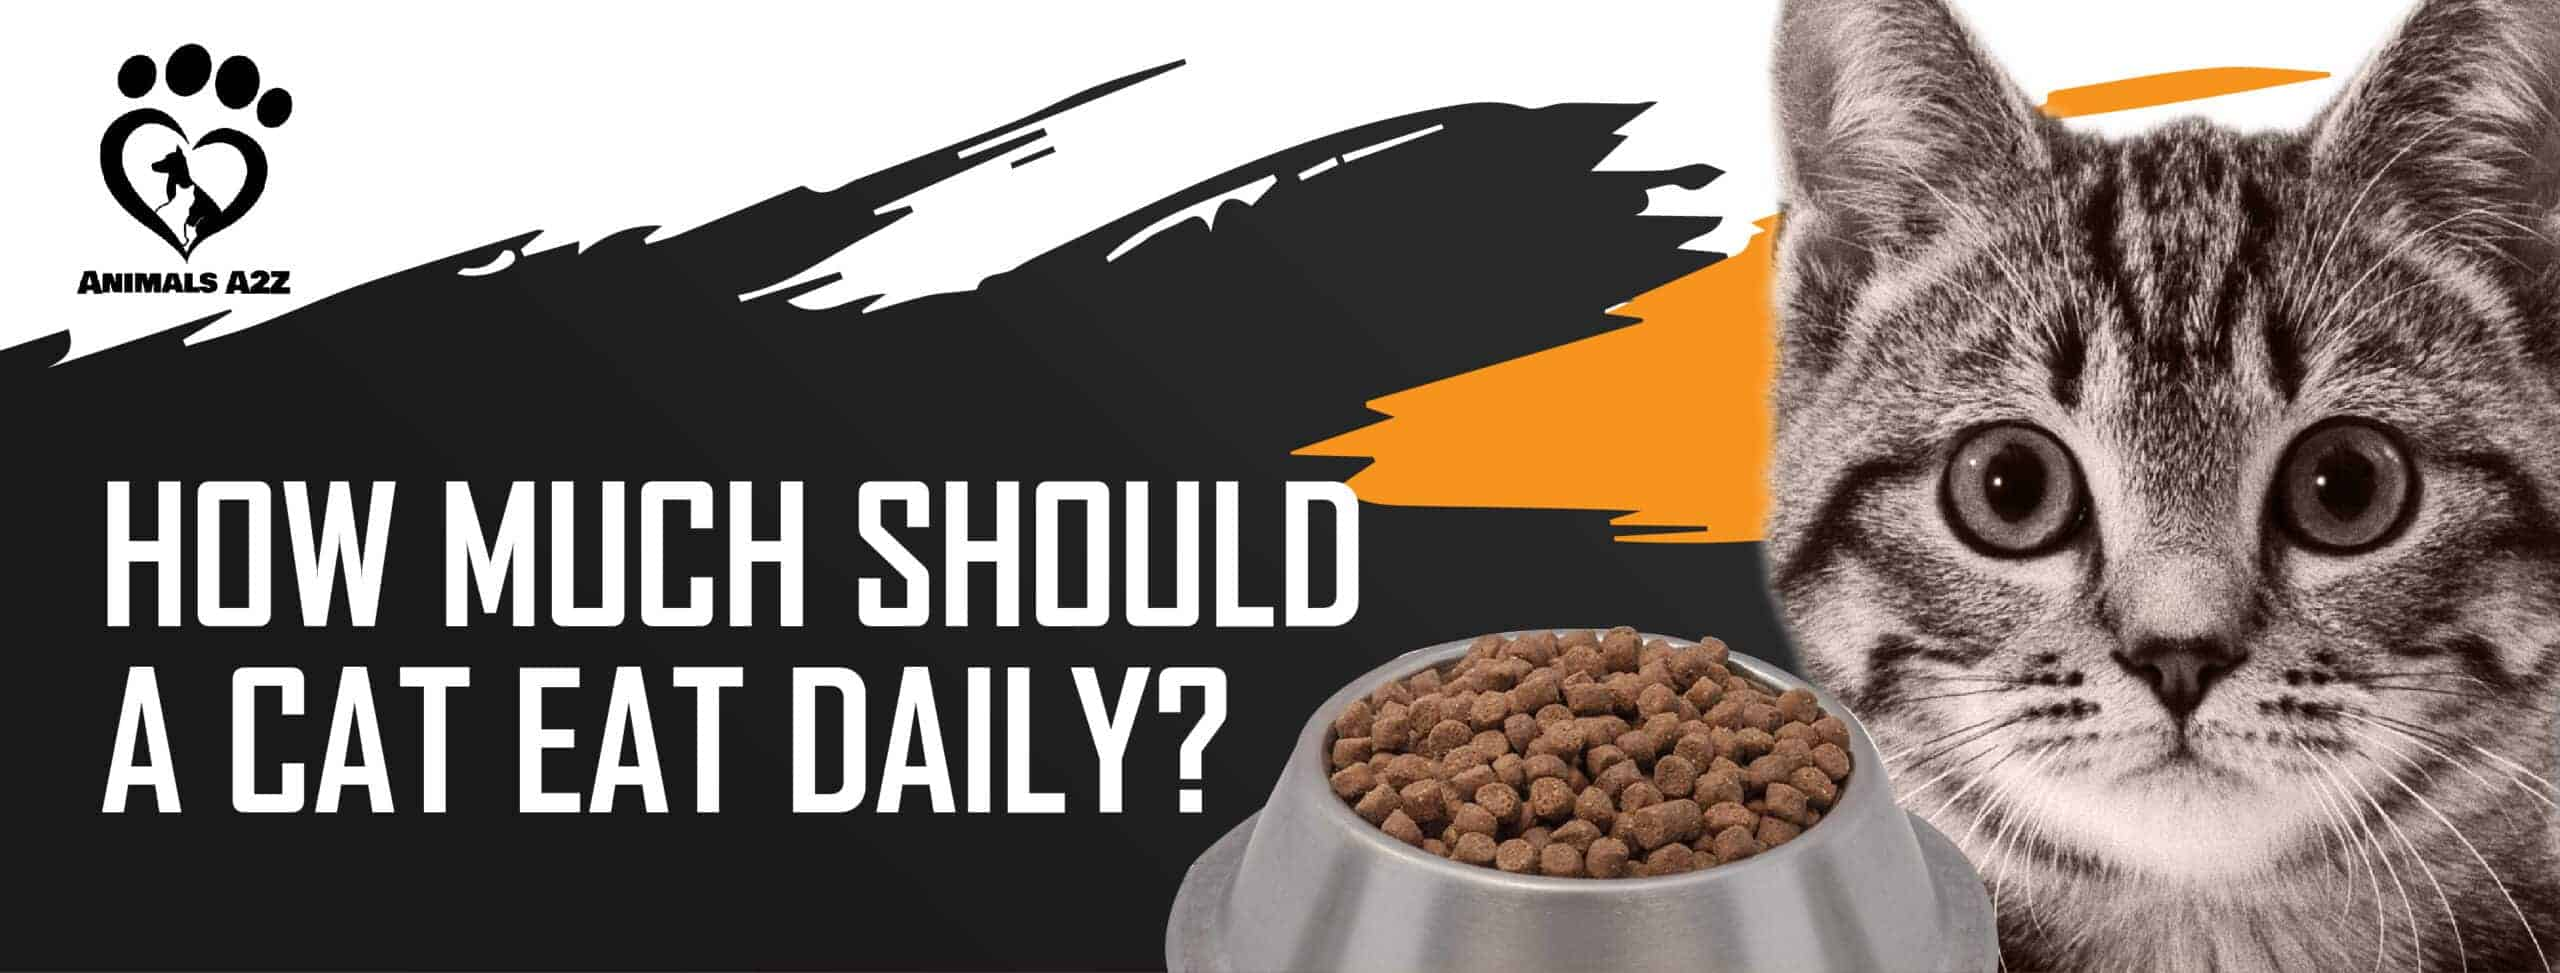 How much should a cat eat daily